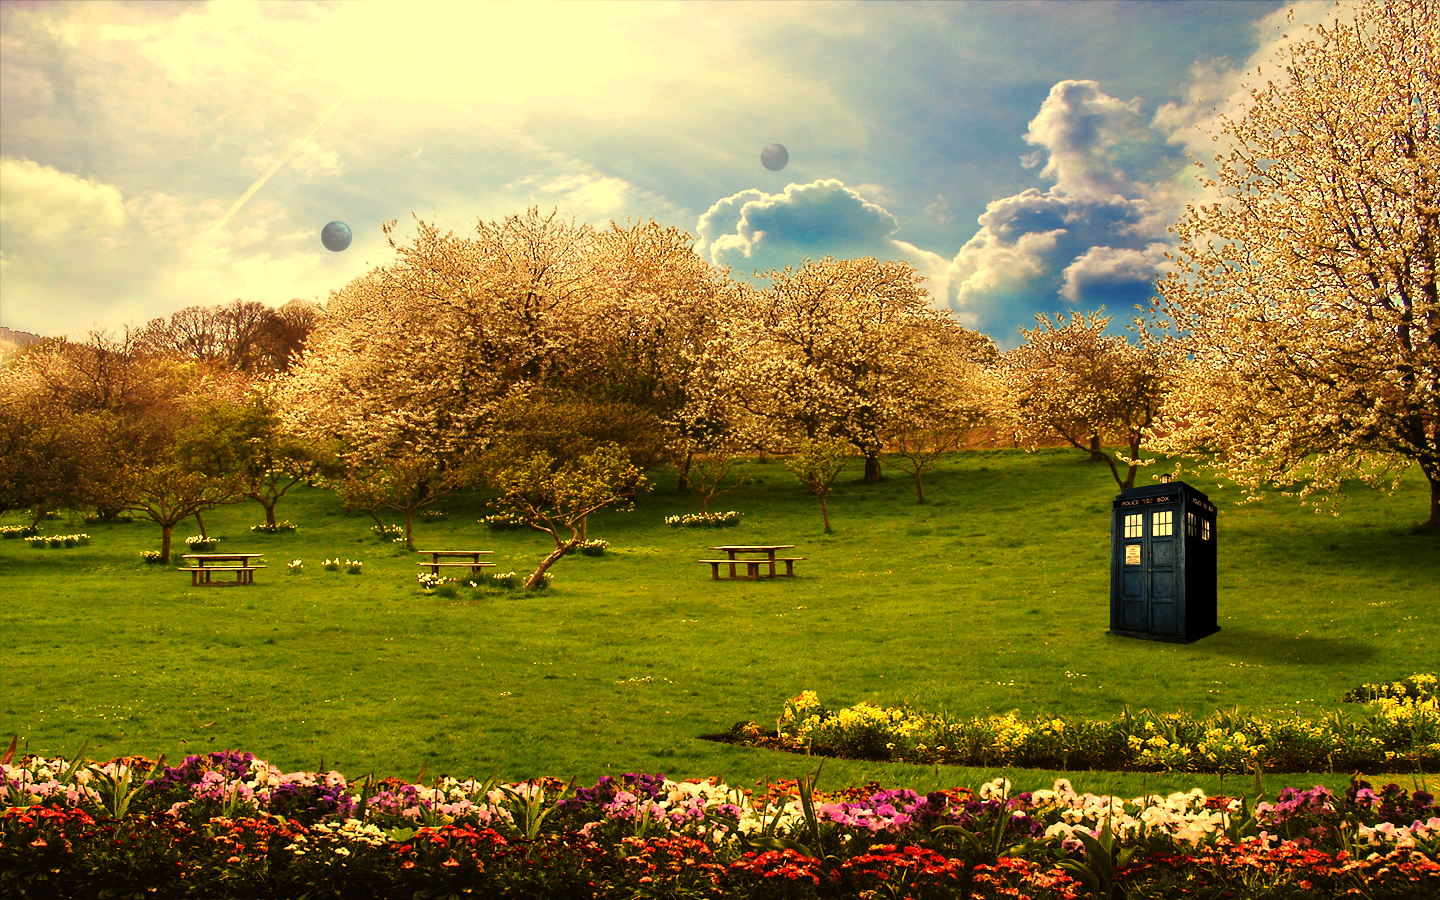 Tardis in the Park by peppermintfrogs